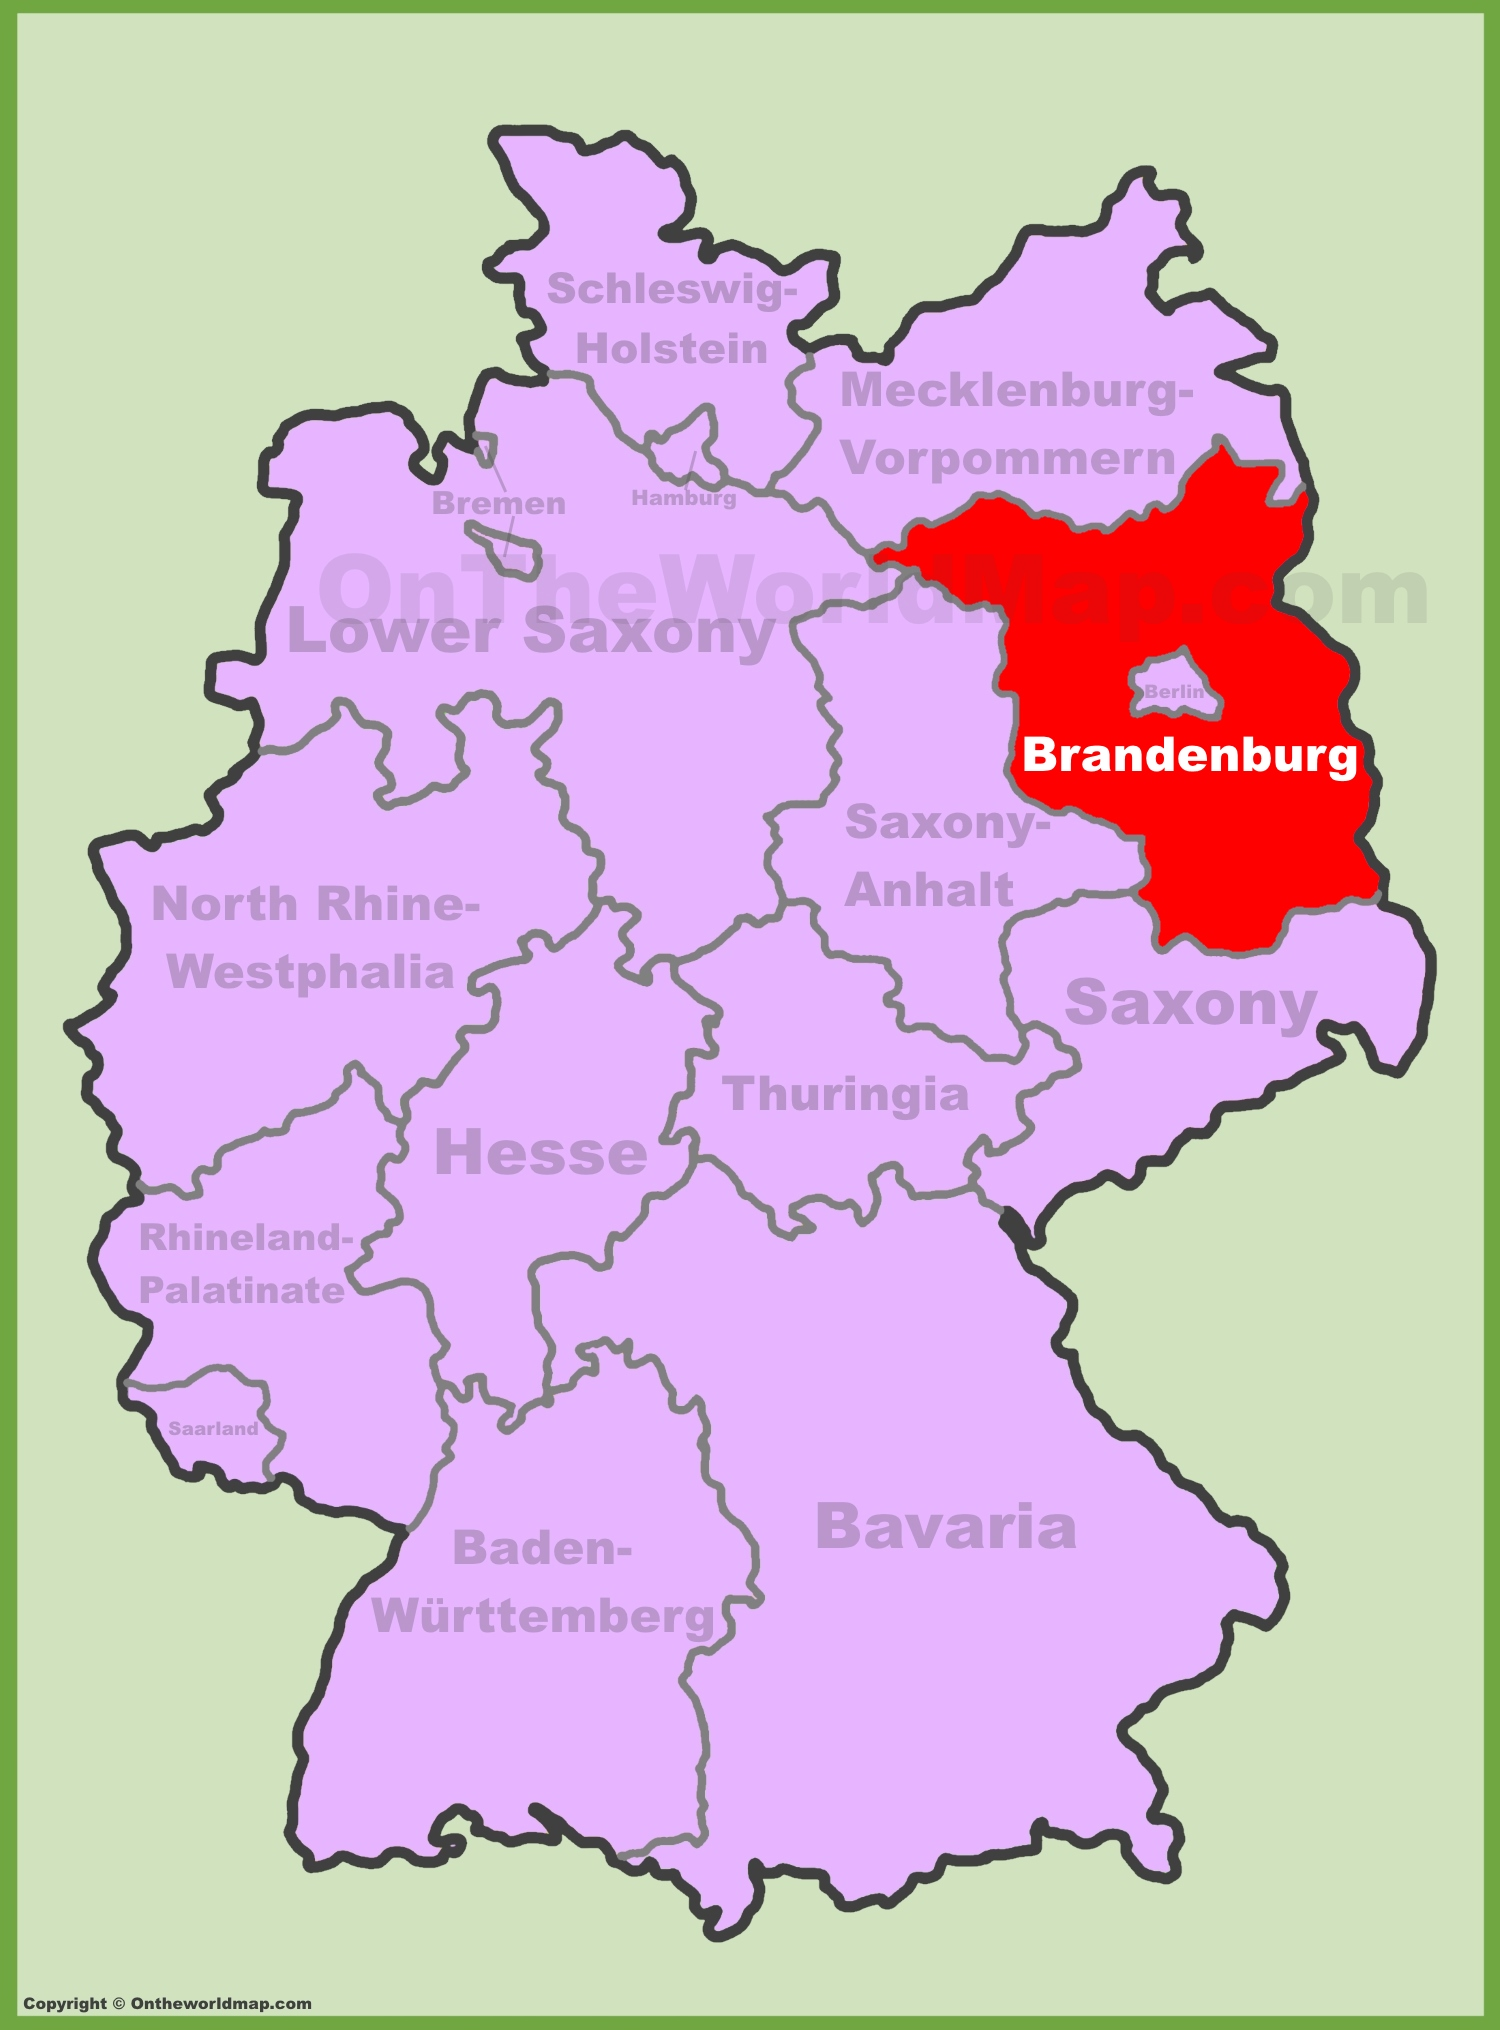 Brandenburg location on the Germany map